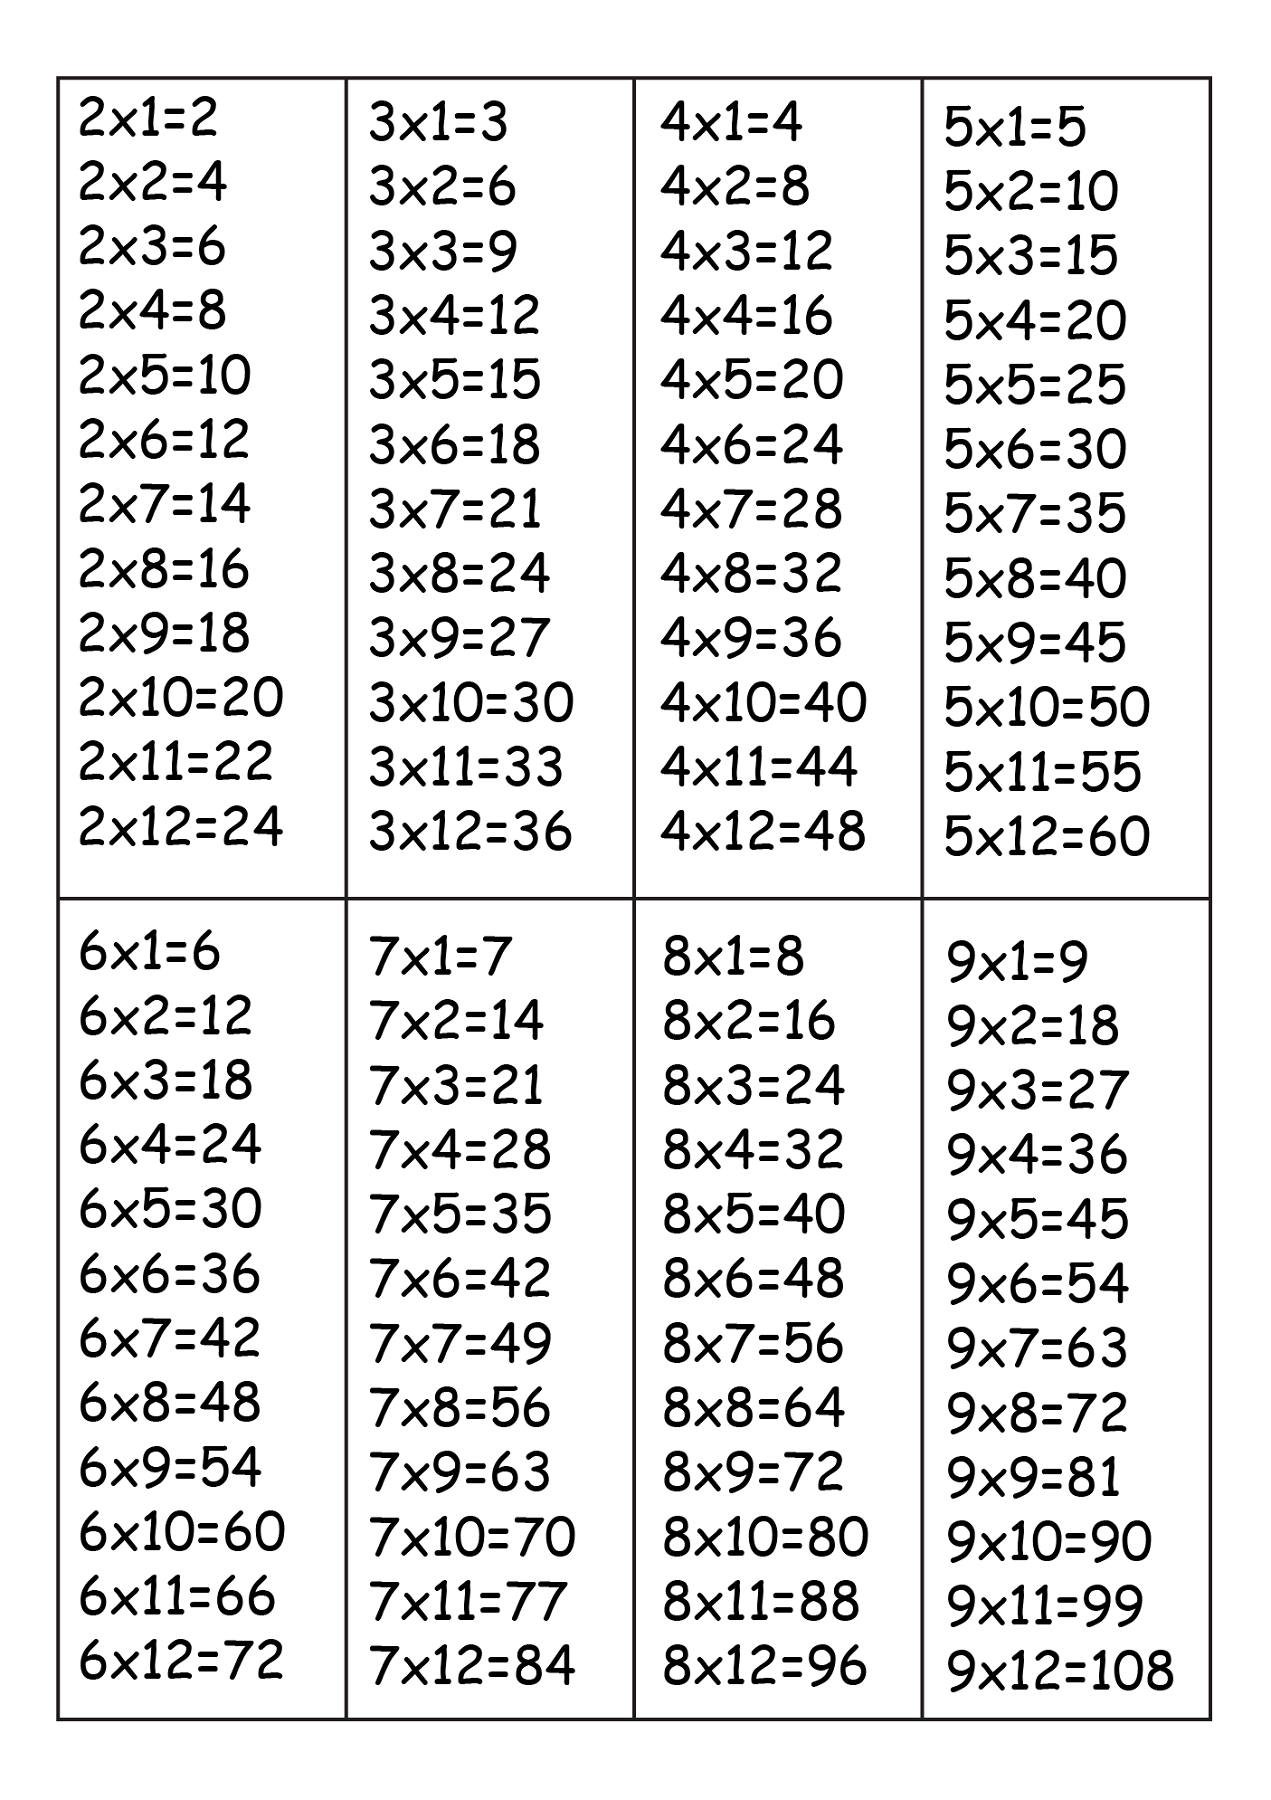 Times table shets printable activity shelter mutiplication times table shets printable activity shelter times table sheettimes tablesmultiplication nvjuhfo Gallery